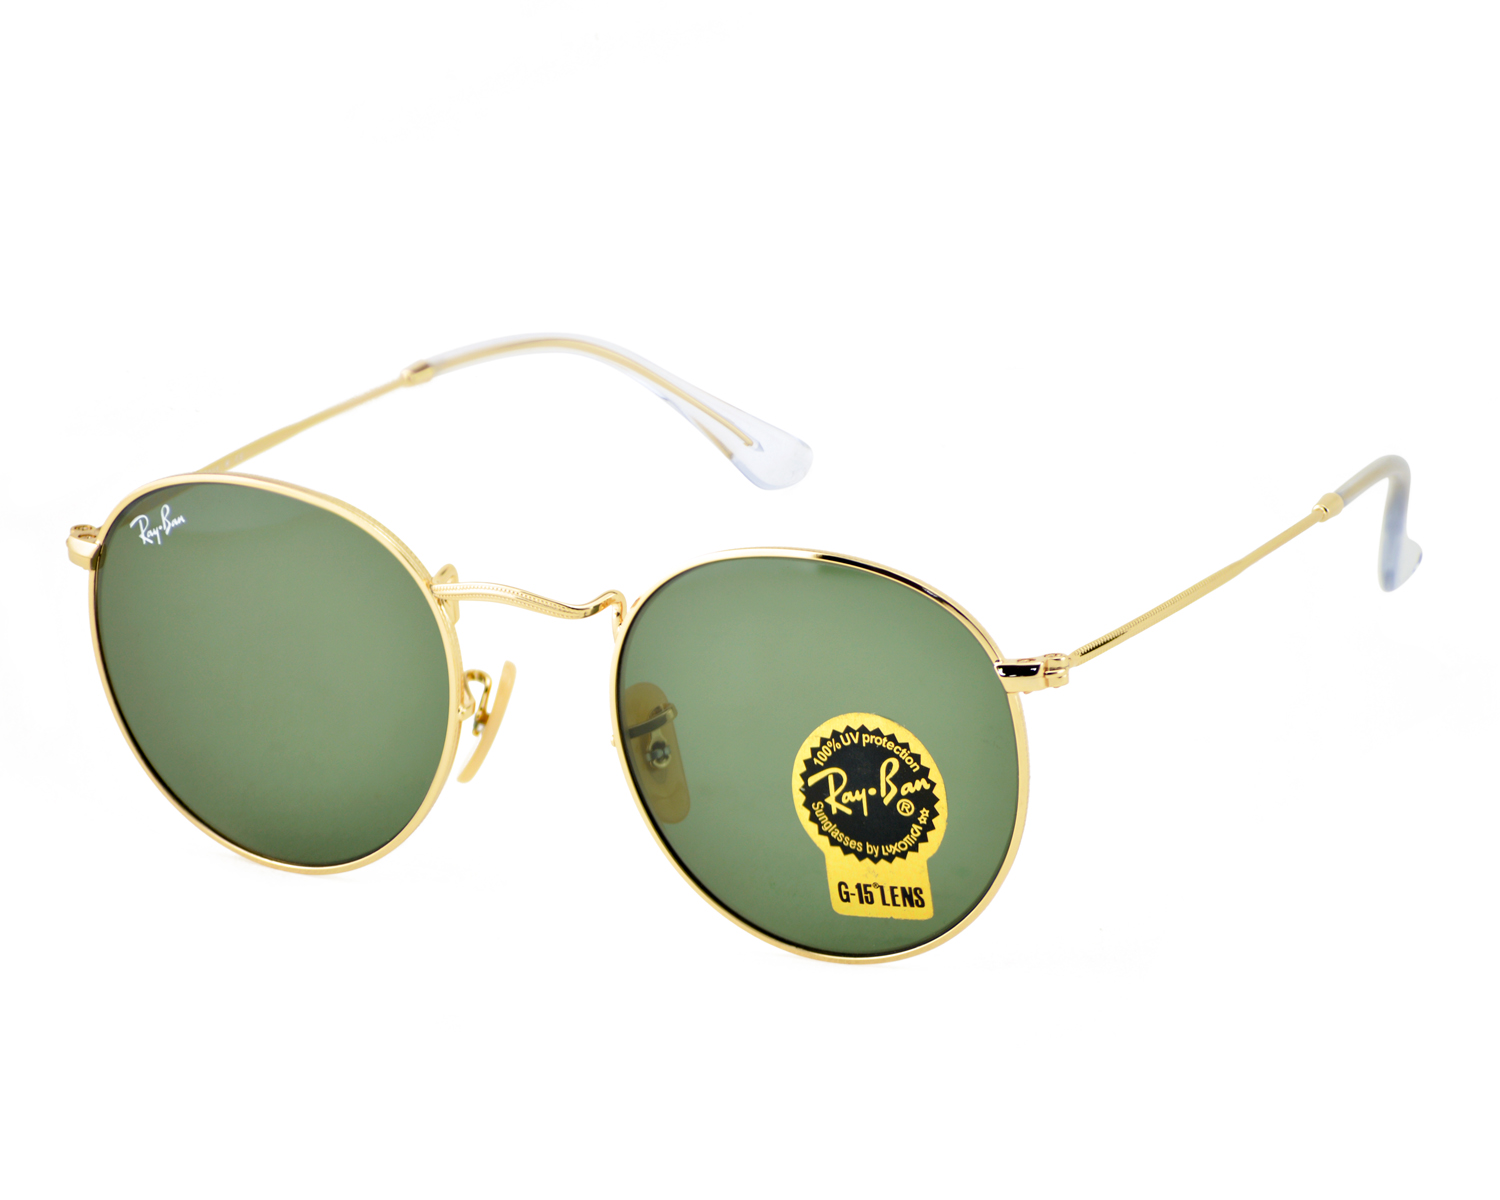 0e723a585cc Ray-Ban RB3447 Round Metal 001 Gold Frame  Green Classic G-15 Lens  Sunglasses 50mm